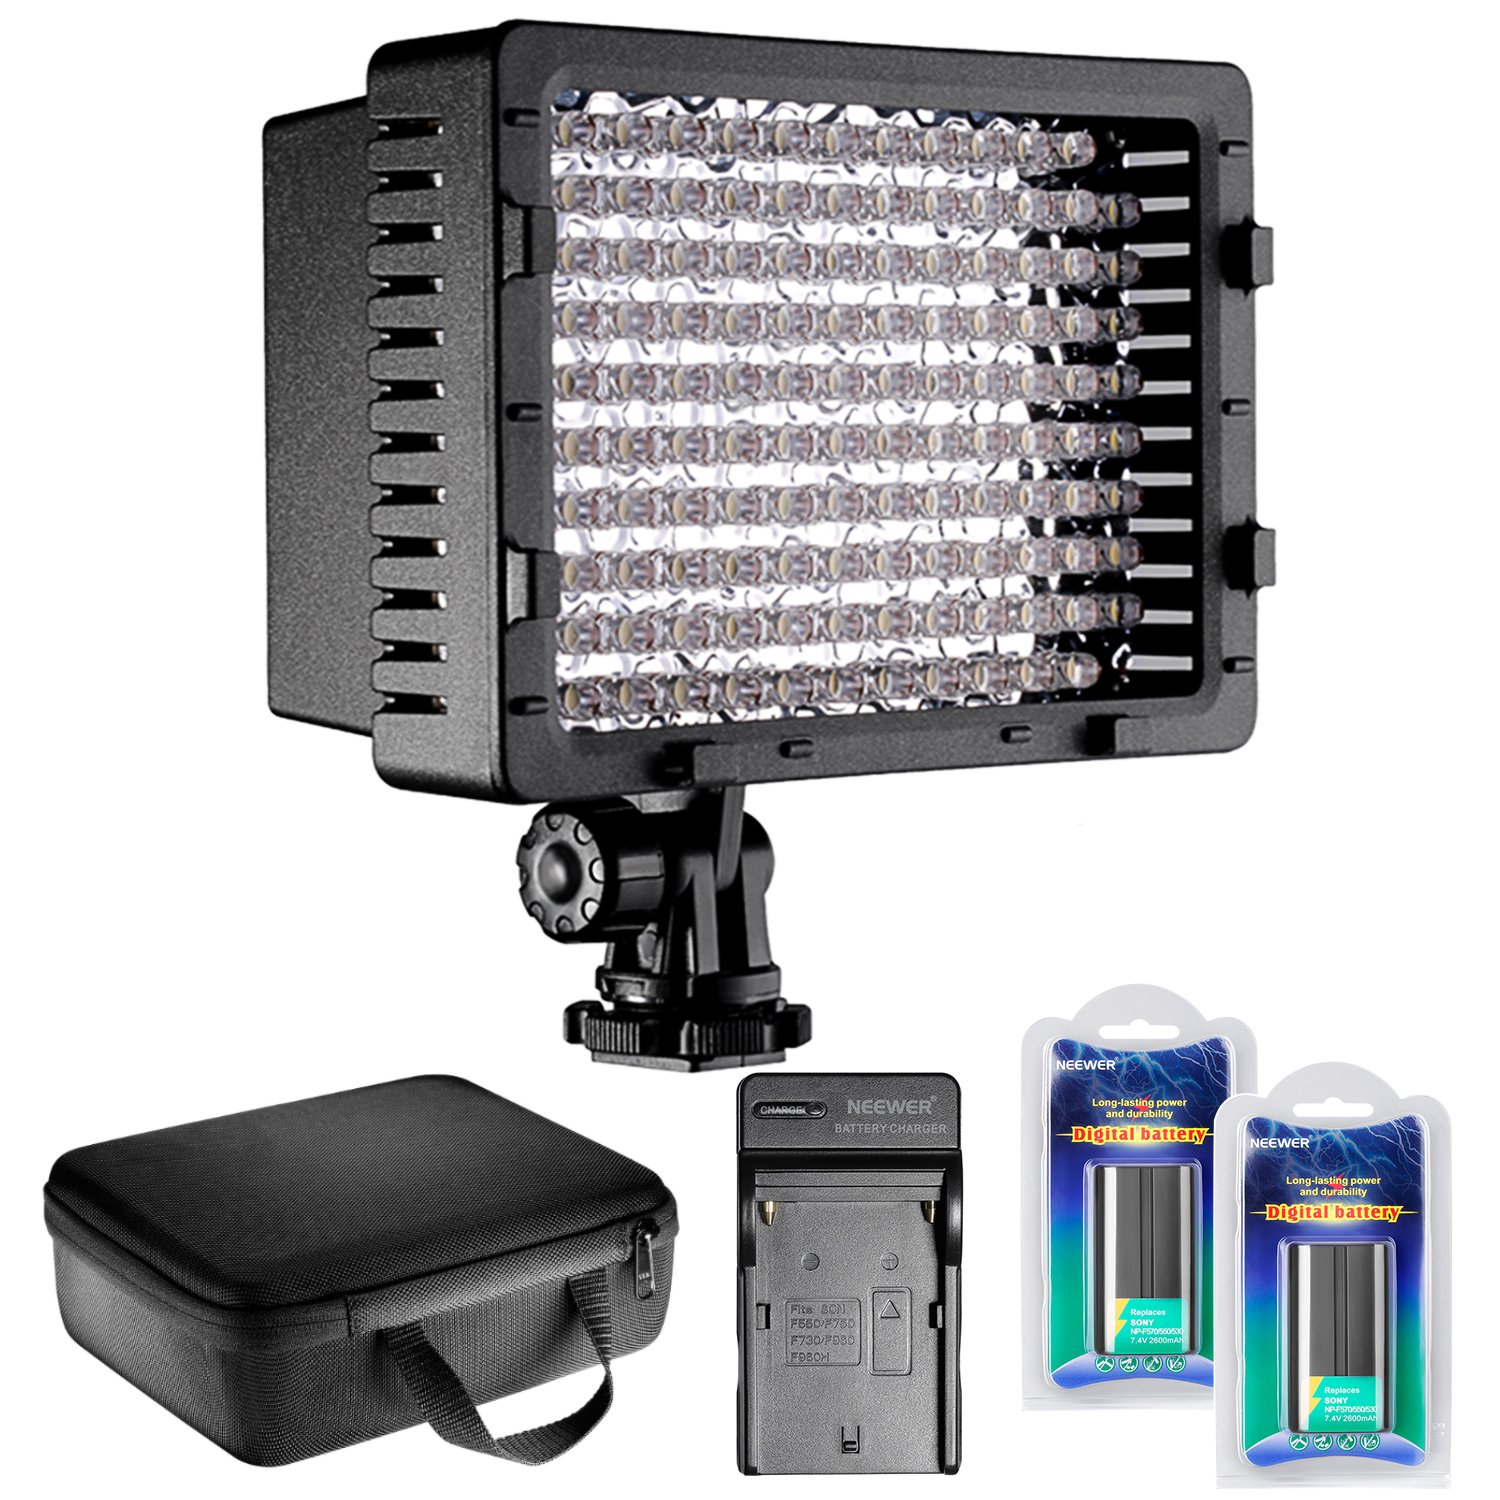 Neewer CN-126 LED Video Light Dimmable Lamp Panel Kit Includes: Video Light Color Filters, Battery, AC Wall Charger Car Adapter Carrying Case Cannon DSLR Cameras DV Camcorders 90090012@@##1